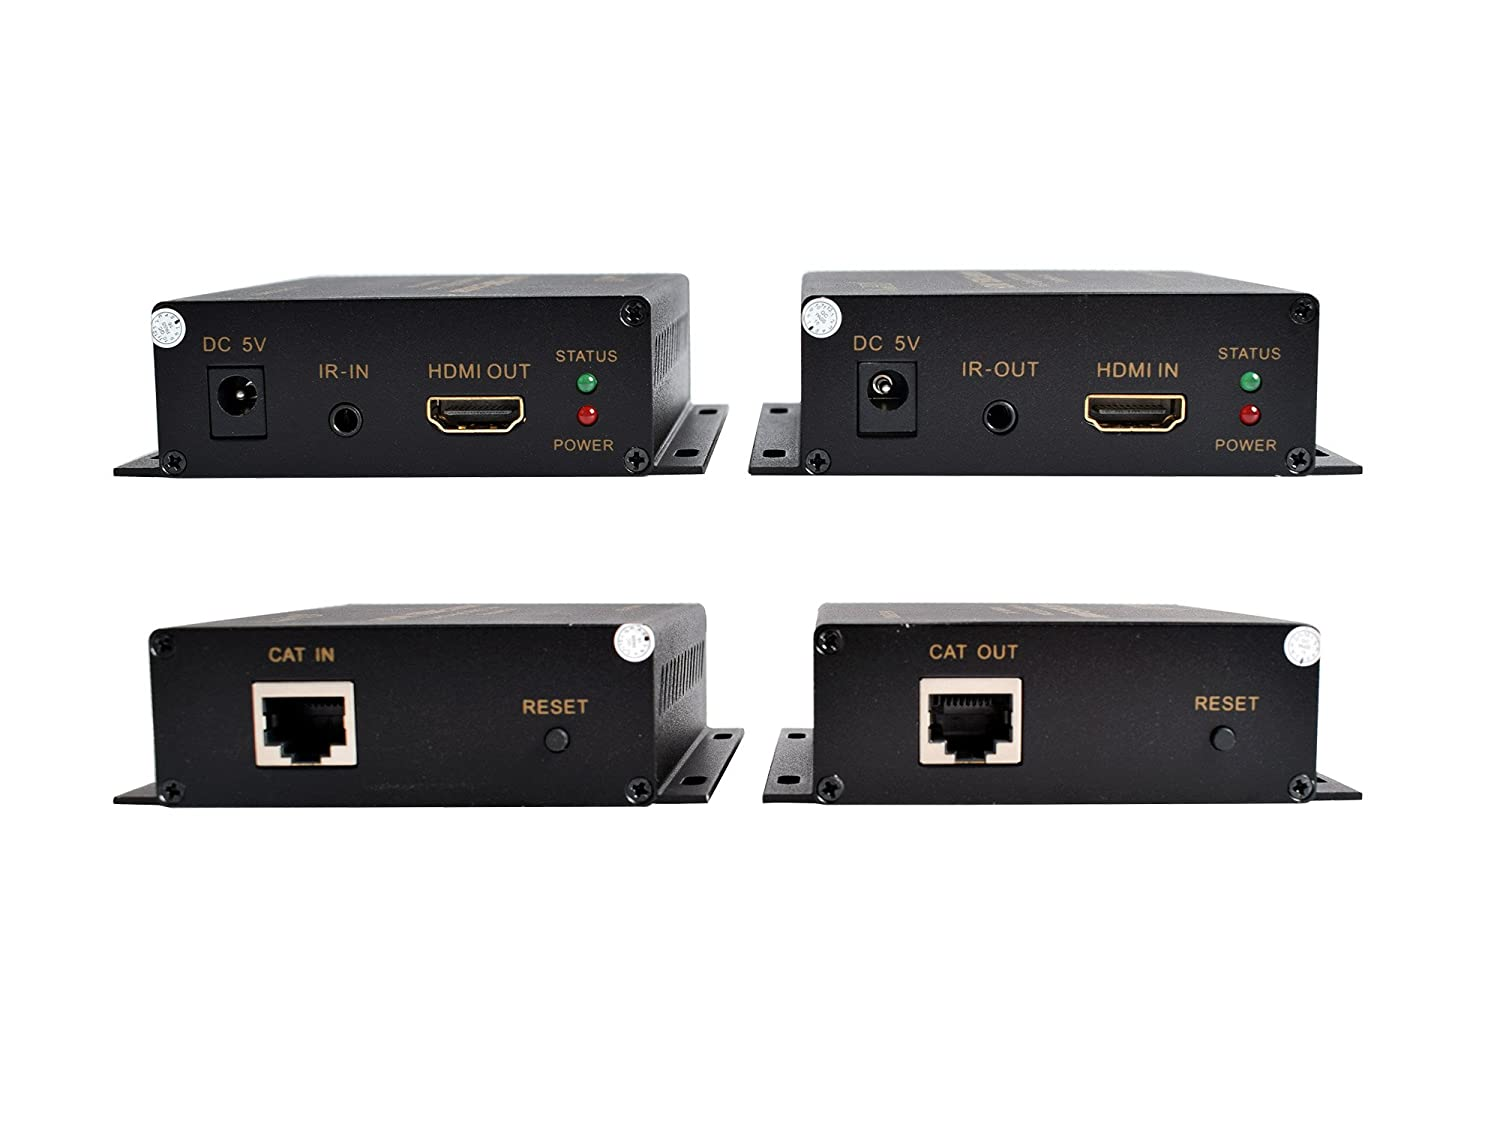 Amazon.com: ViewHD HDMI Extender Over CAT 5e|6|7 Cable (60M Extender Over  Single CAT Cable) | Model: VHD-HE60M: Computers & Accessories